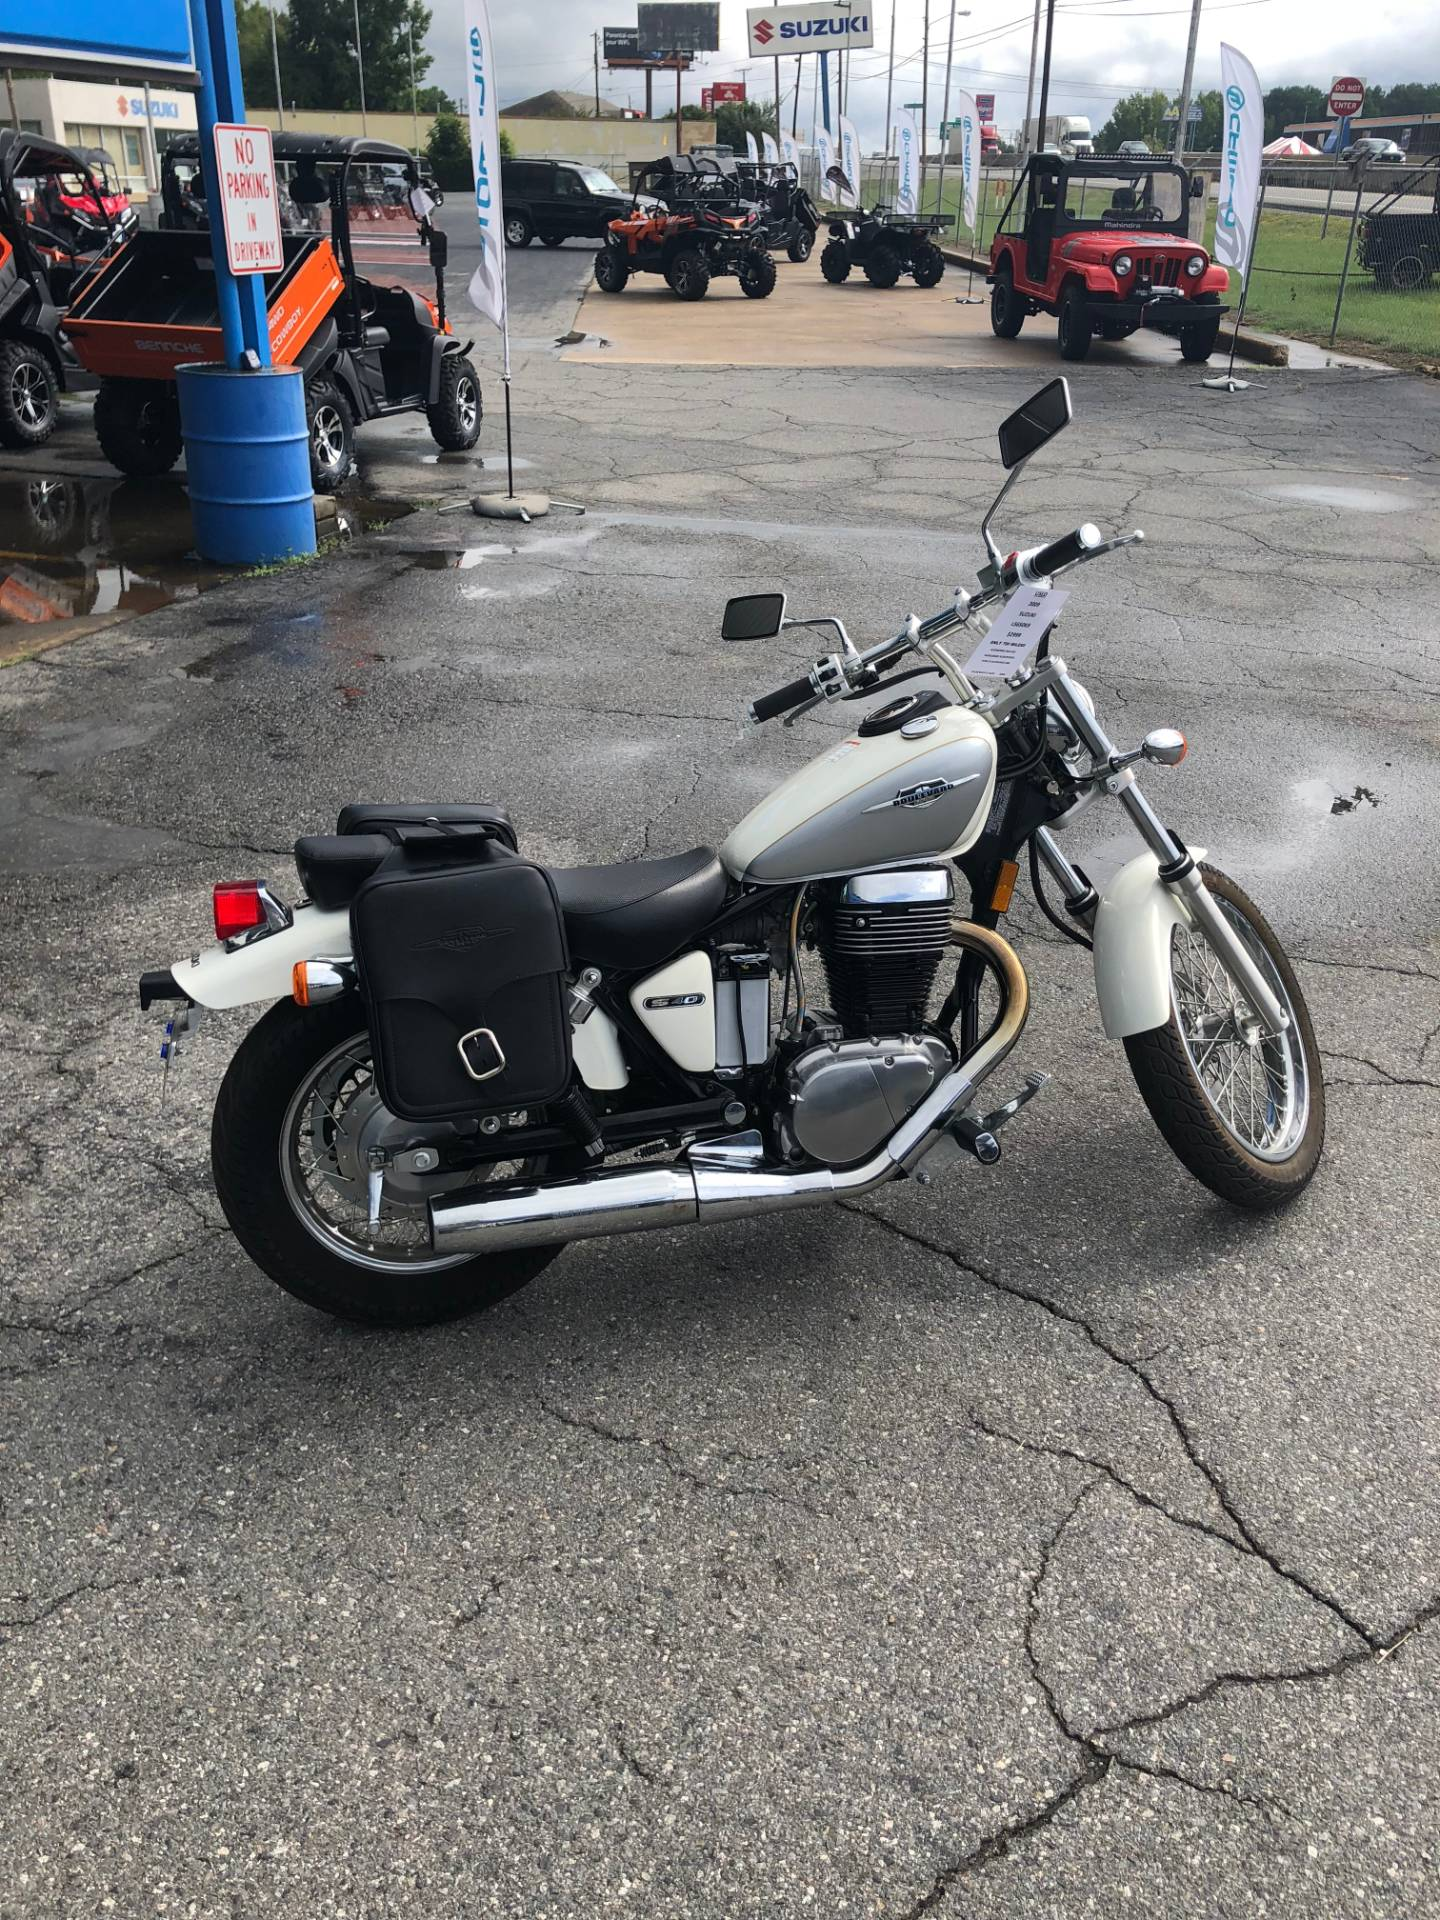 Used 2009 Suzuki Boulevard S40 | Motorcycles in Little Rock, AR ...